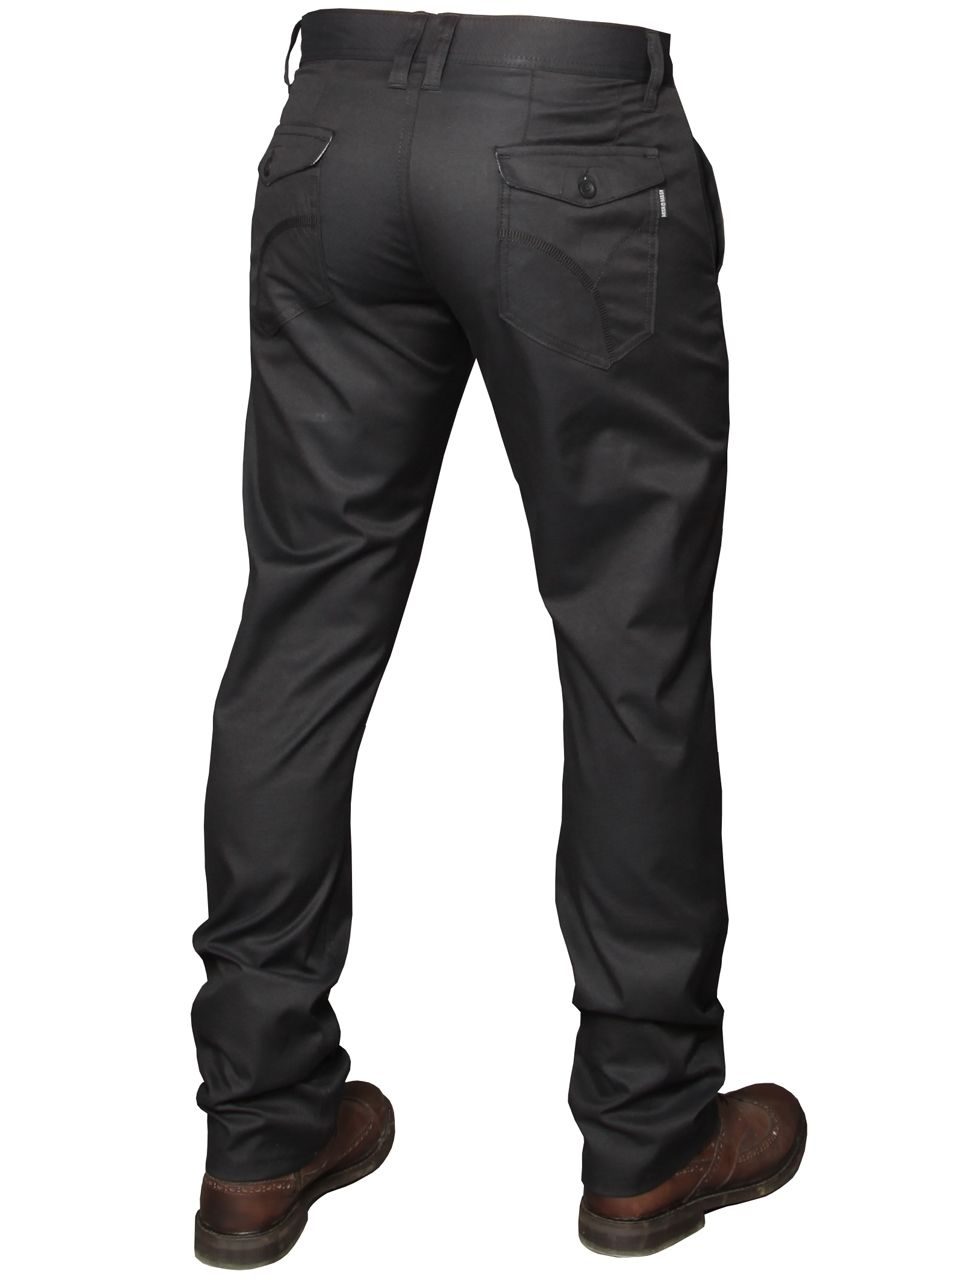 Mens Black Straight Jeans